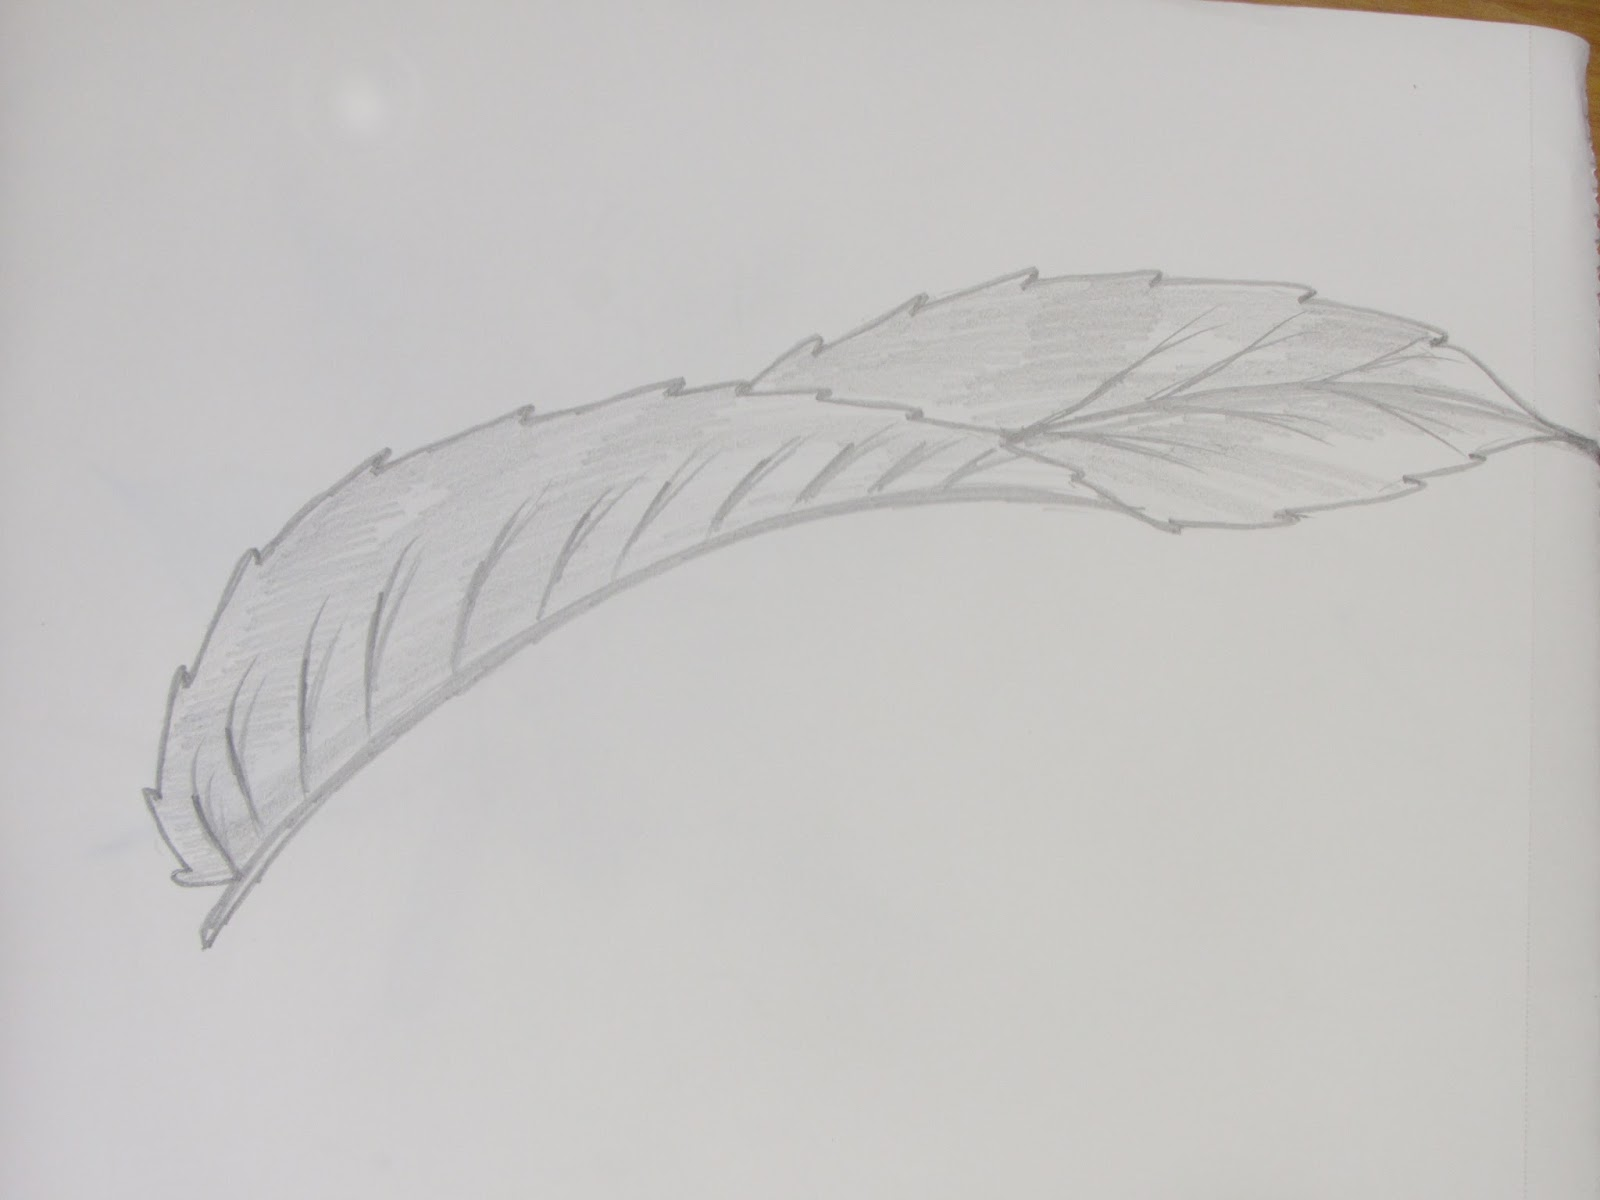 Richa art club draw and sketch long curved indica type leaf painting sketching drawing